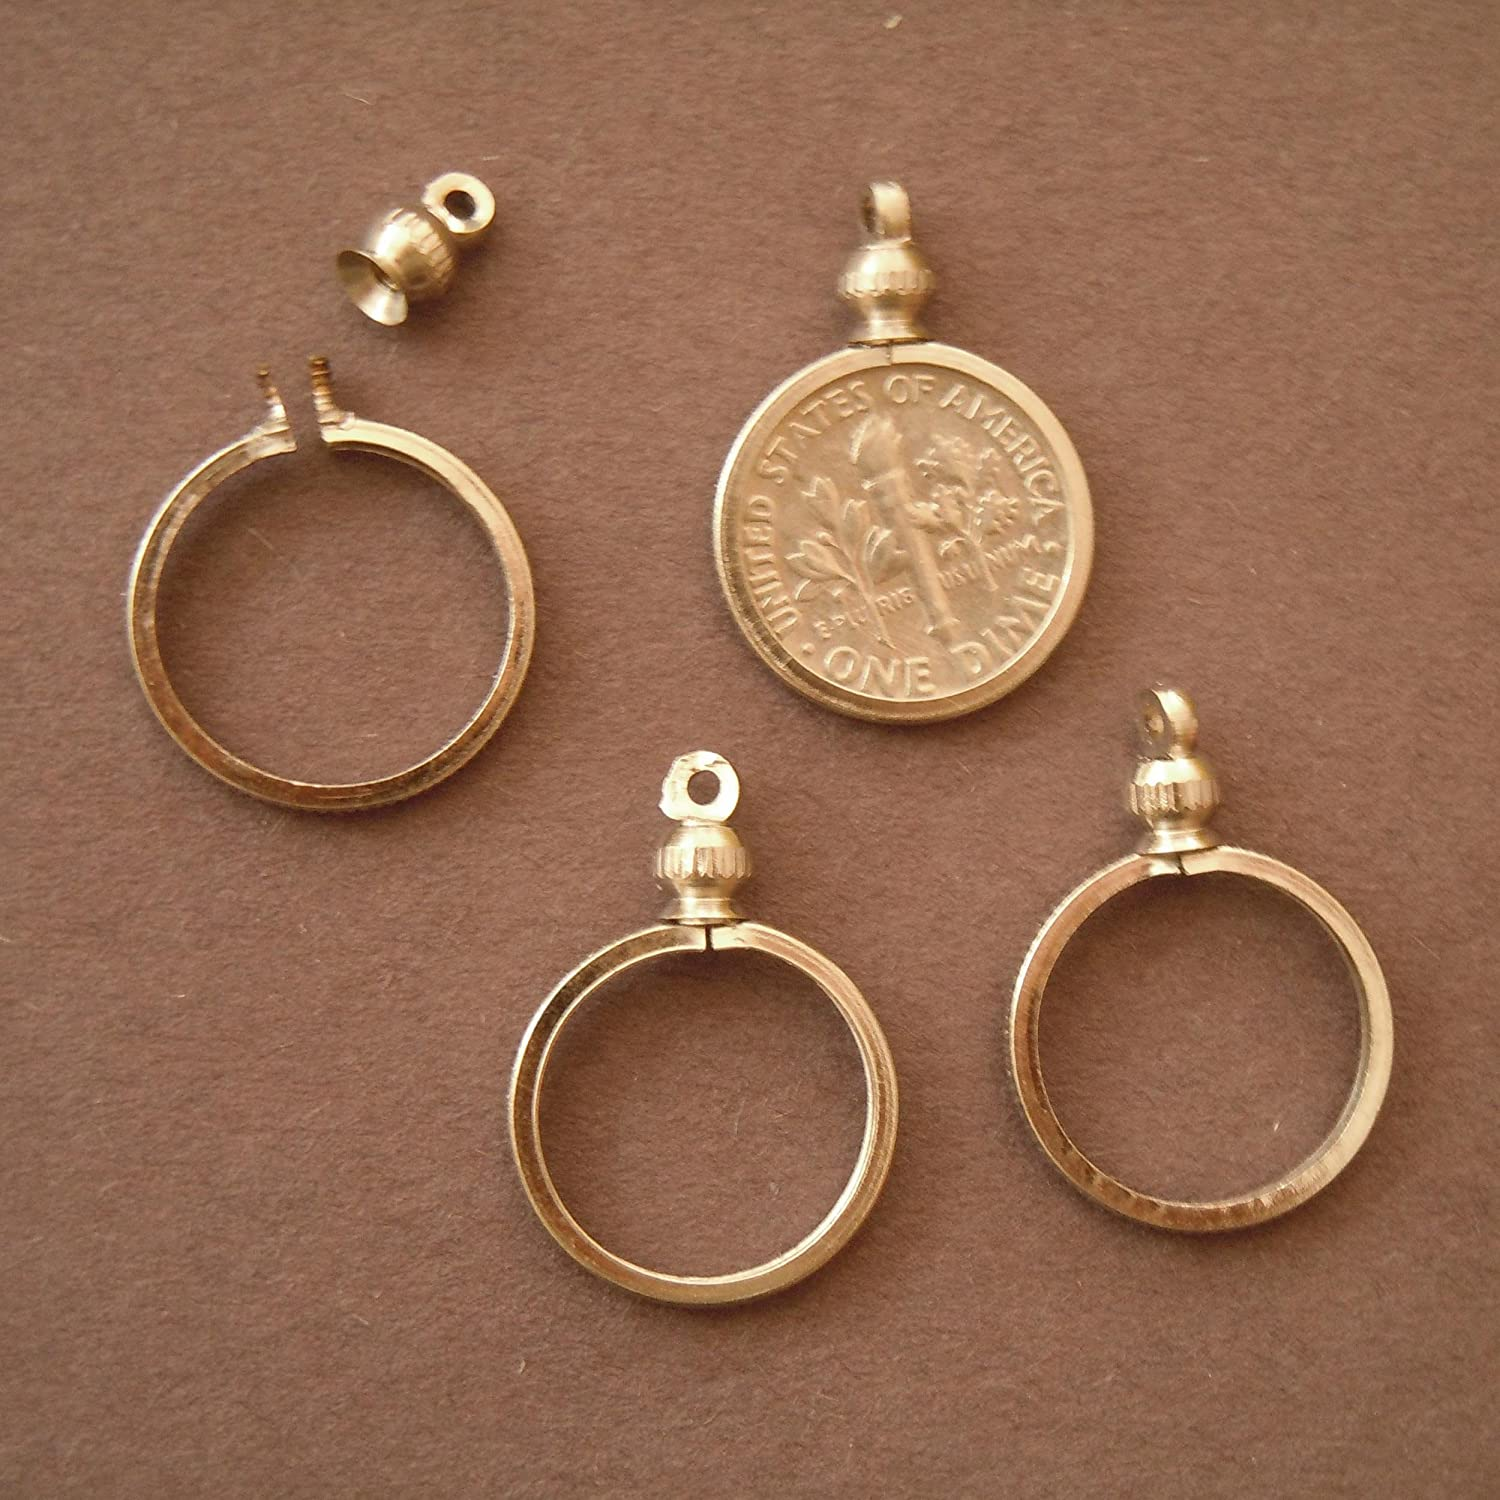 Amazon coin holder bezel for 10 cent usa dime for charm amazon coin holder bezel for 10 cent usa dime for charm necklace pendant display pack of 4 toys games aloadofball Image collections